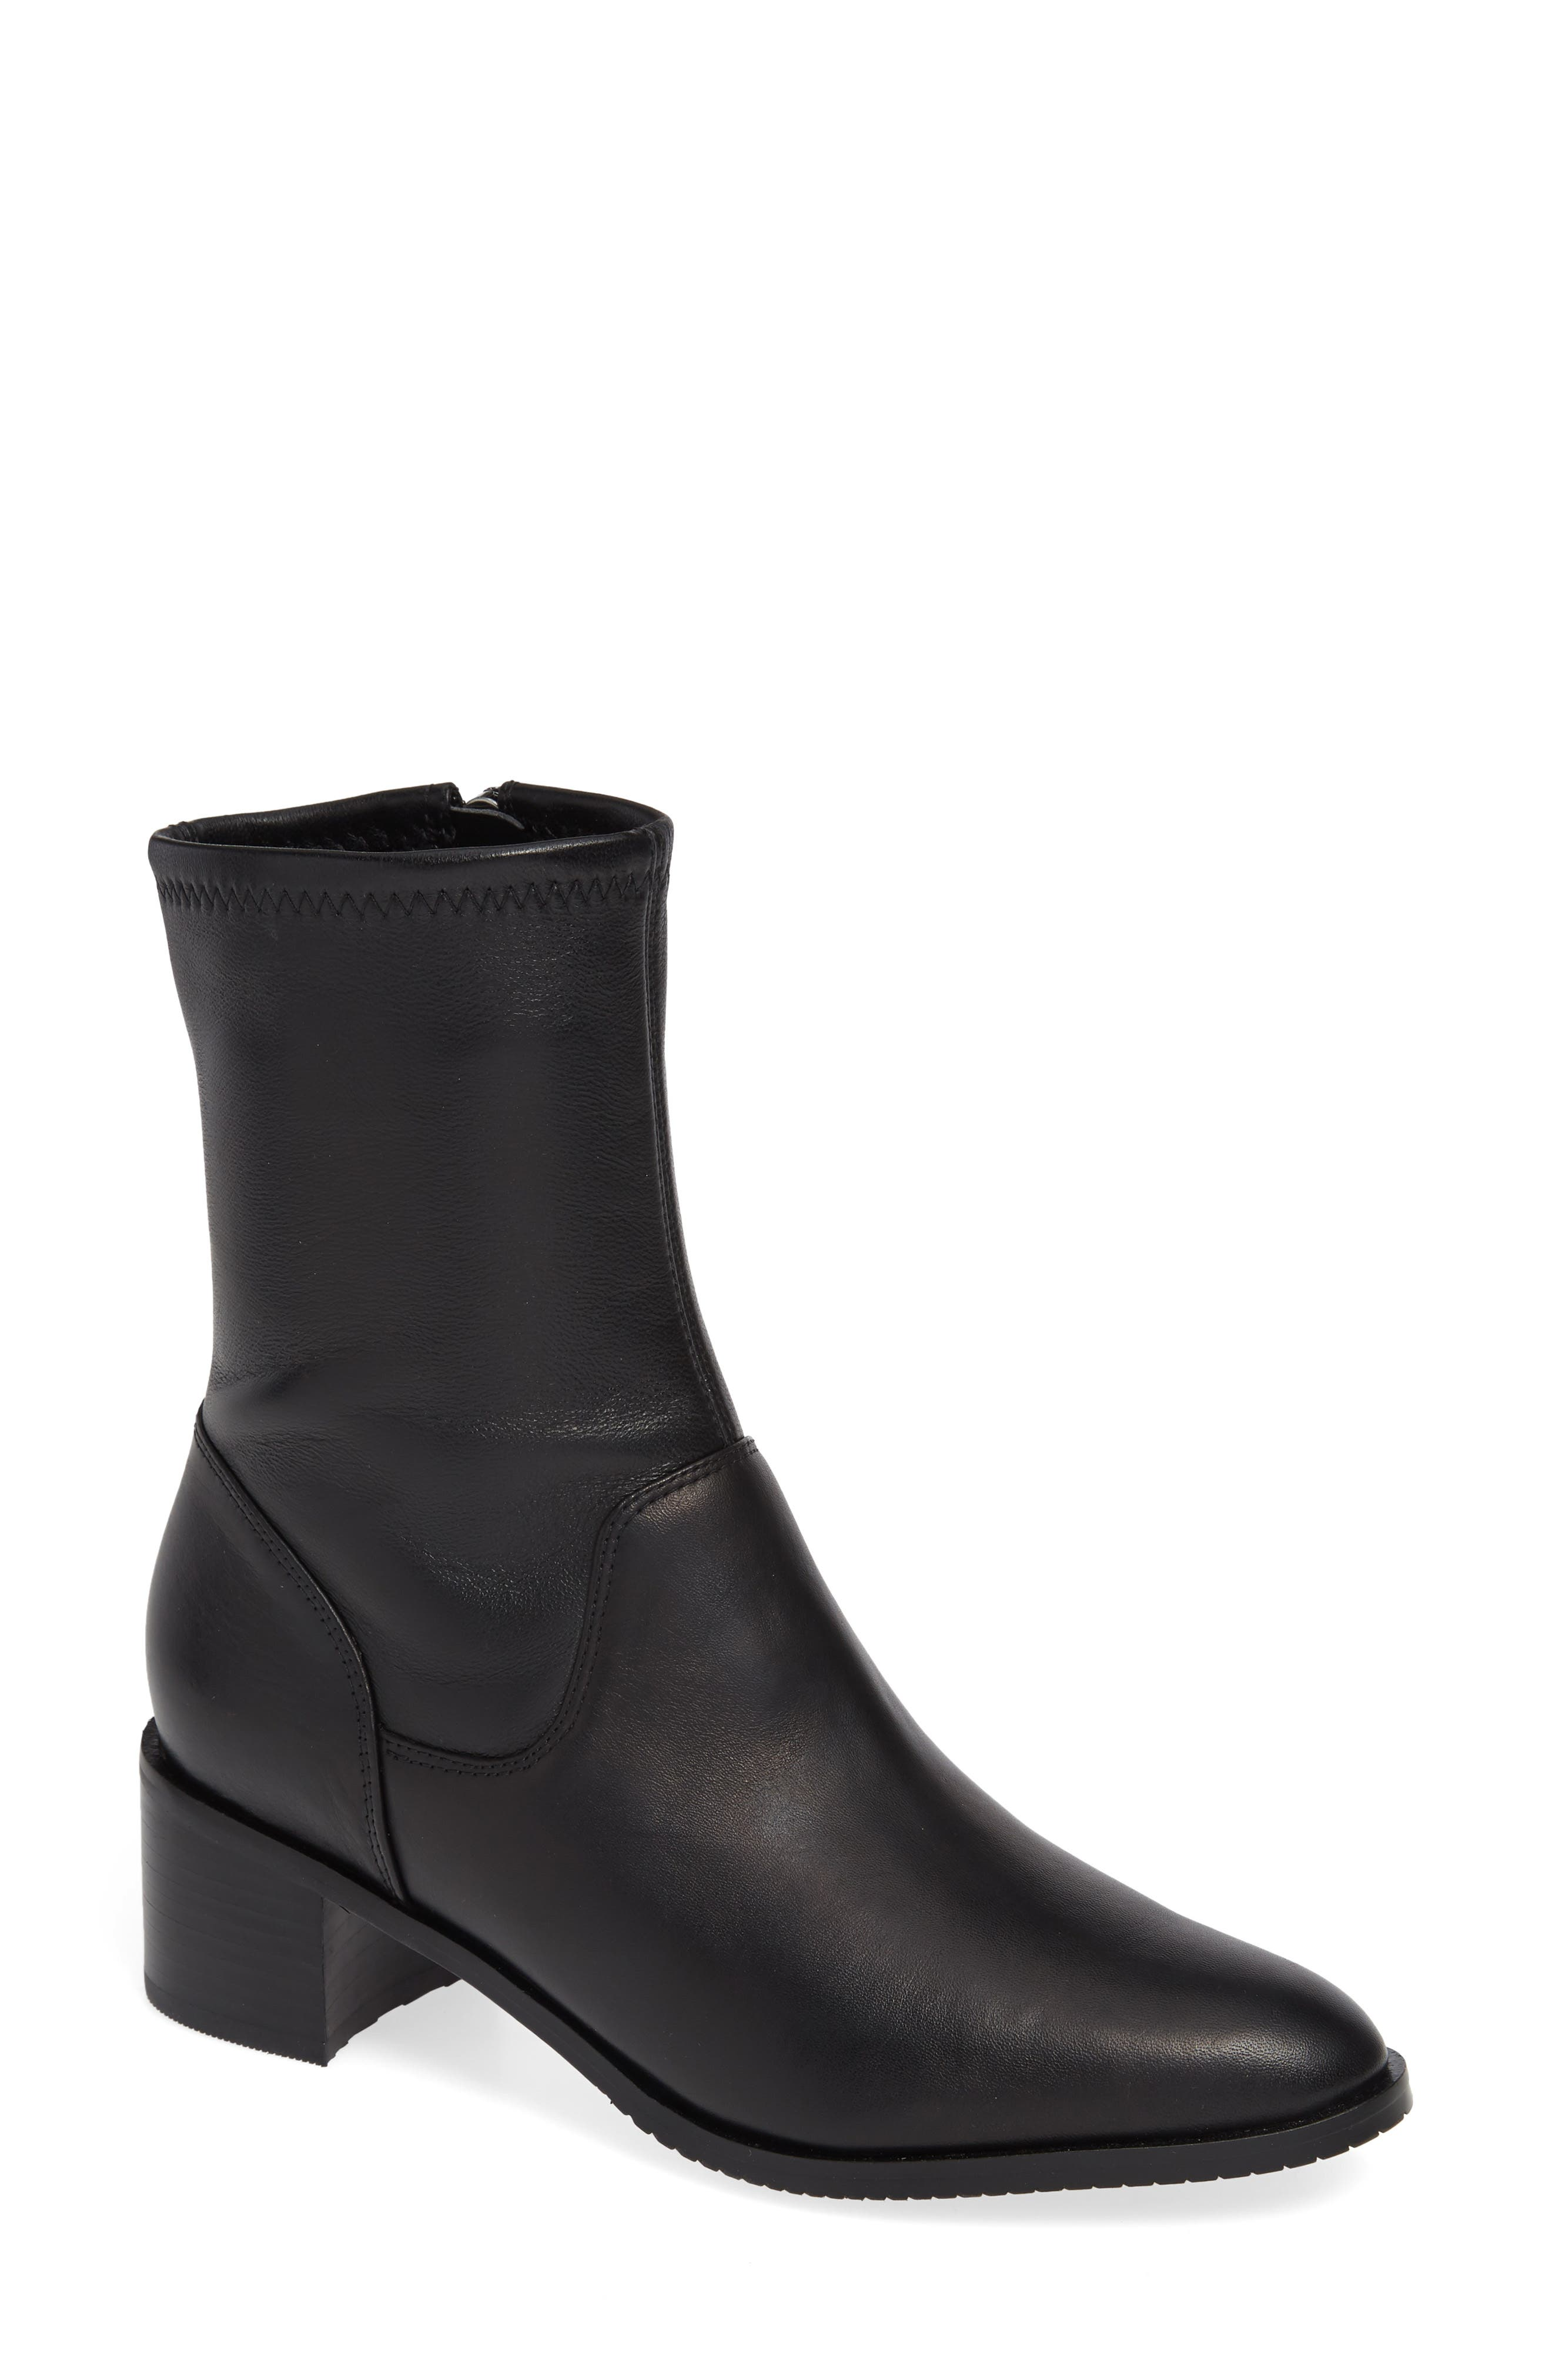 Poise Leah Boot,                             Main thumbnail 1, color,                             BLACK LEATHER